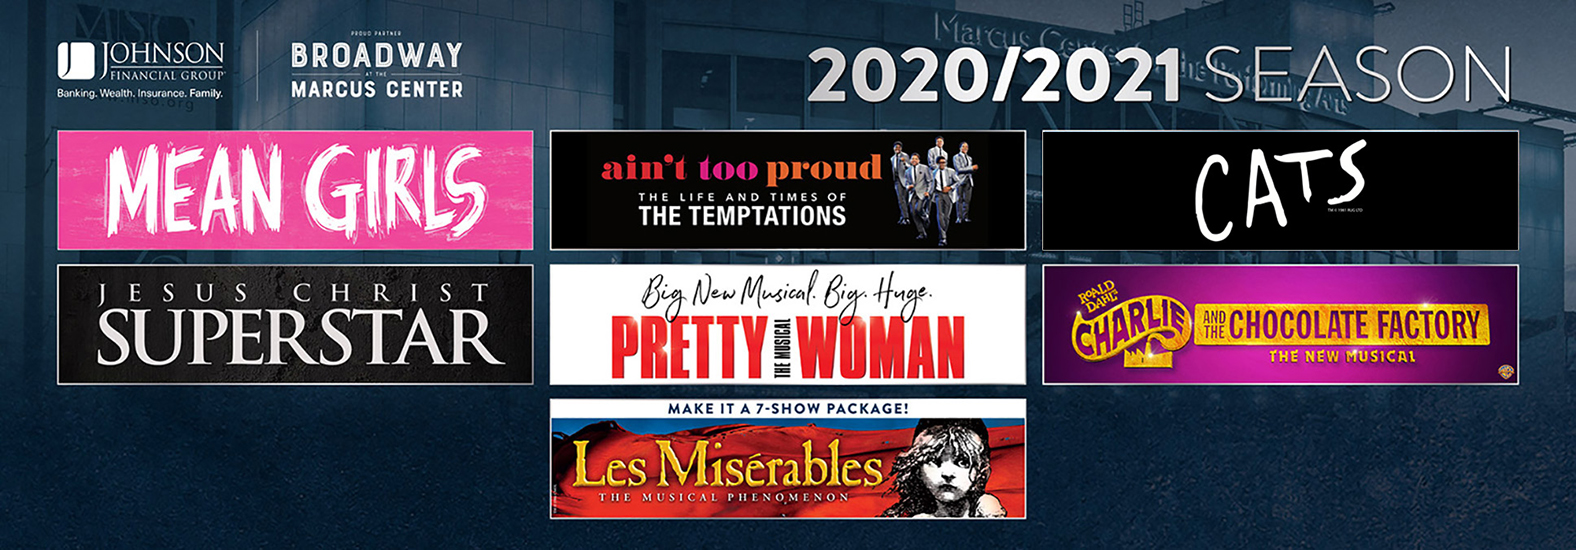 Broadway at the Marcus Center 2020-202